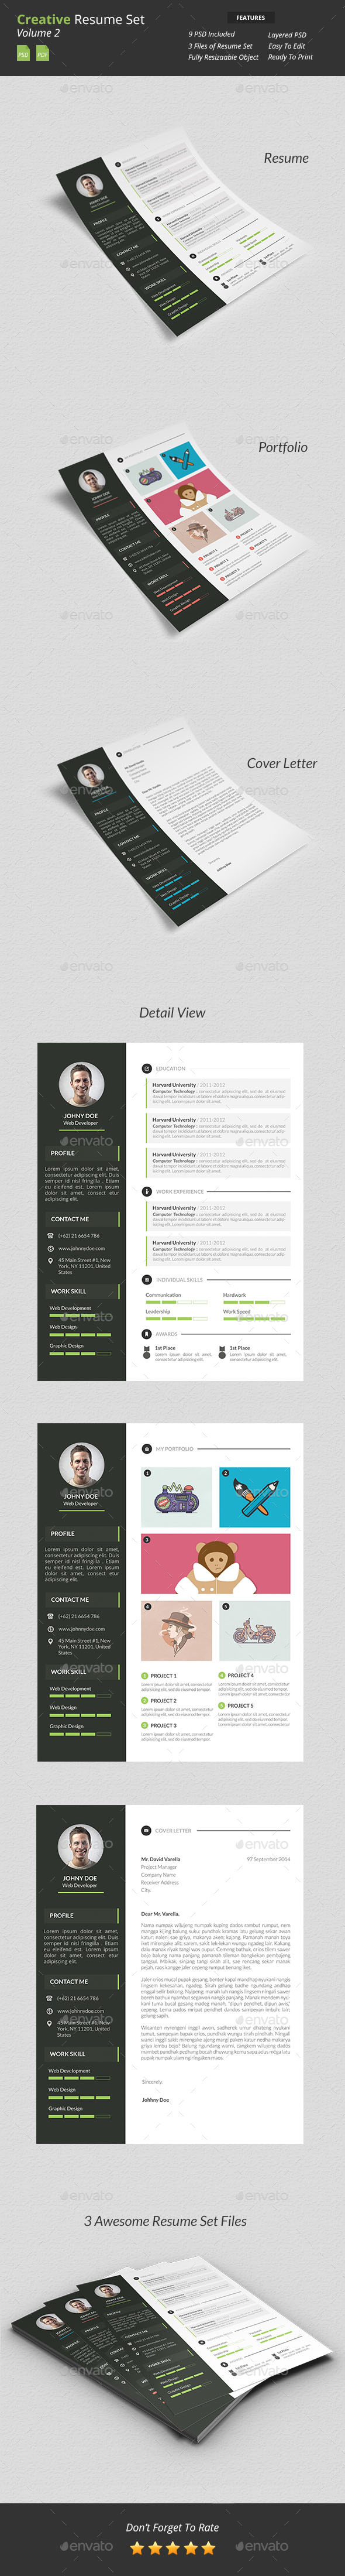 GraphicRiver Creative Resume Set v2 9648021